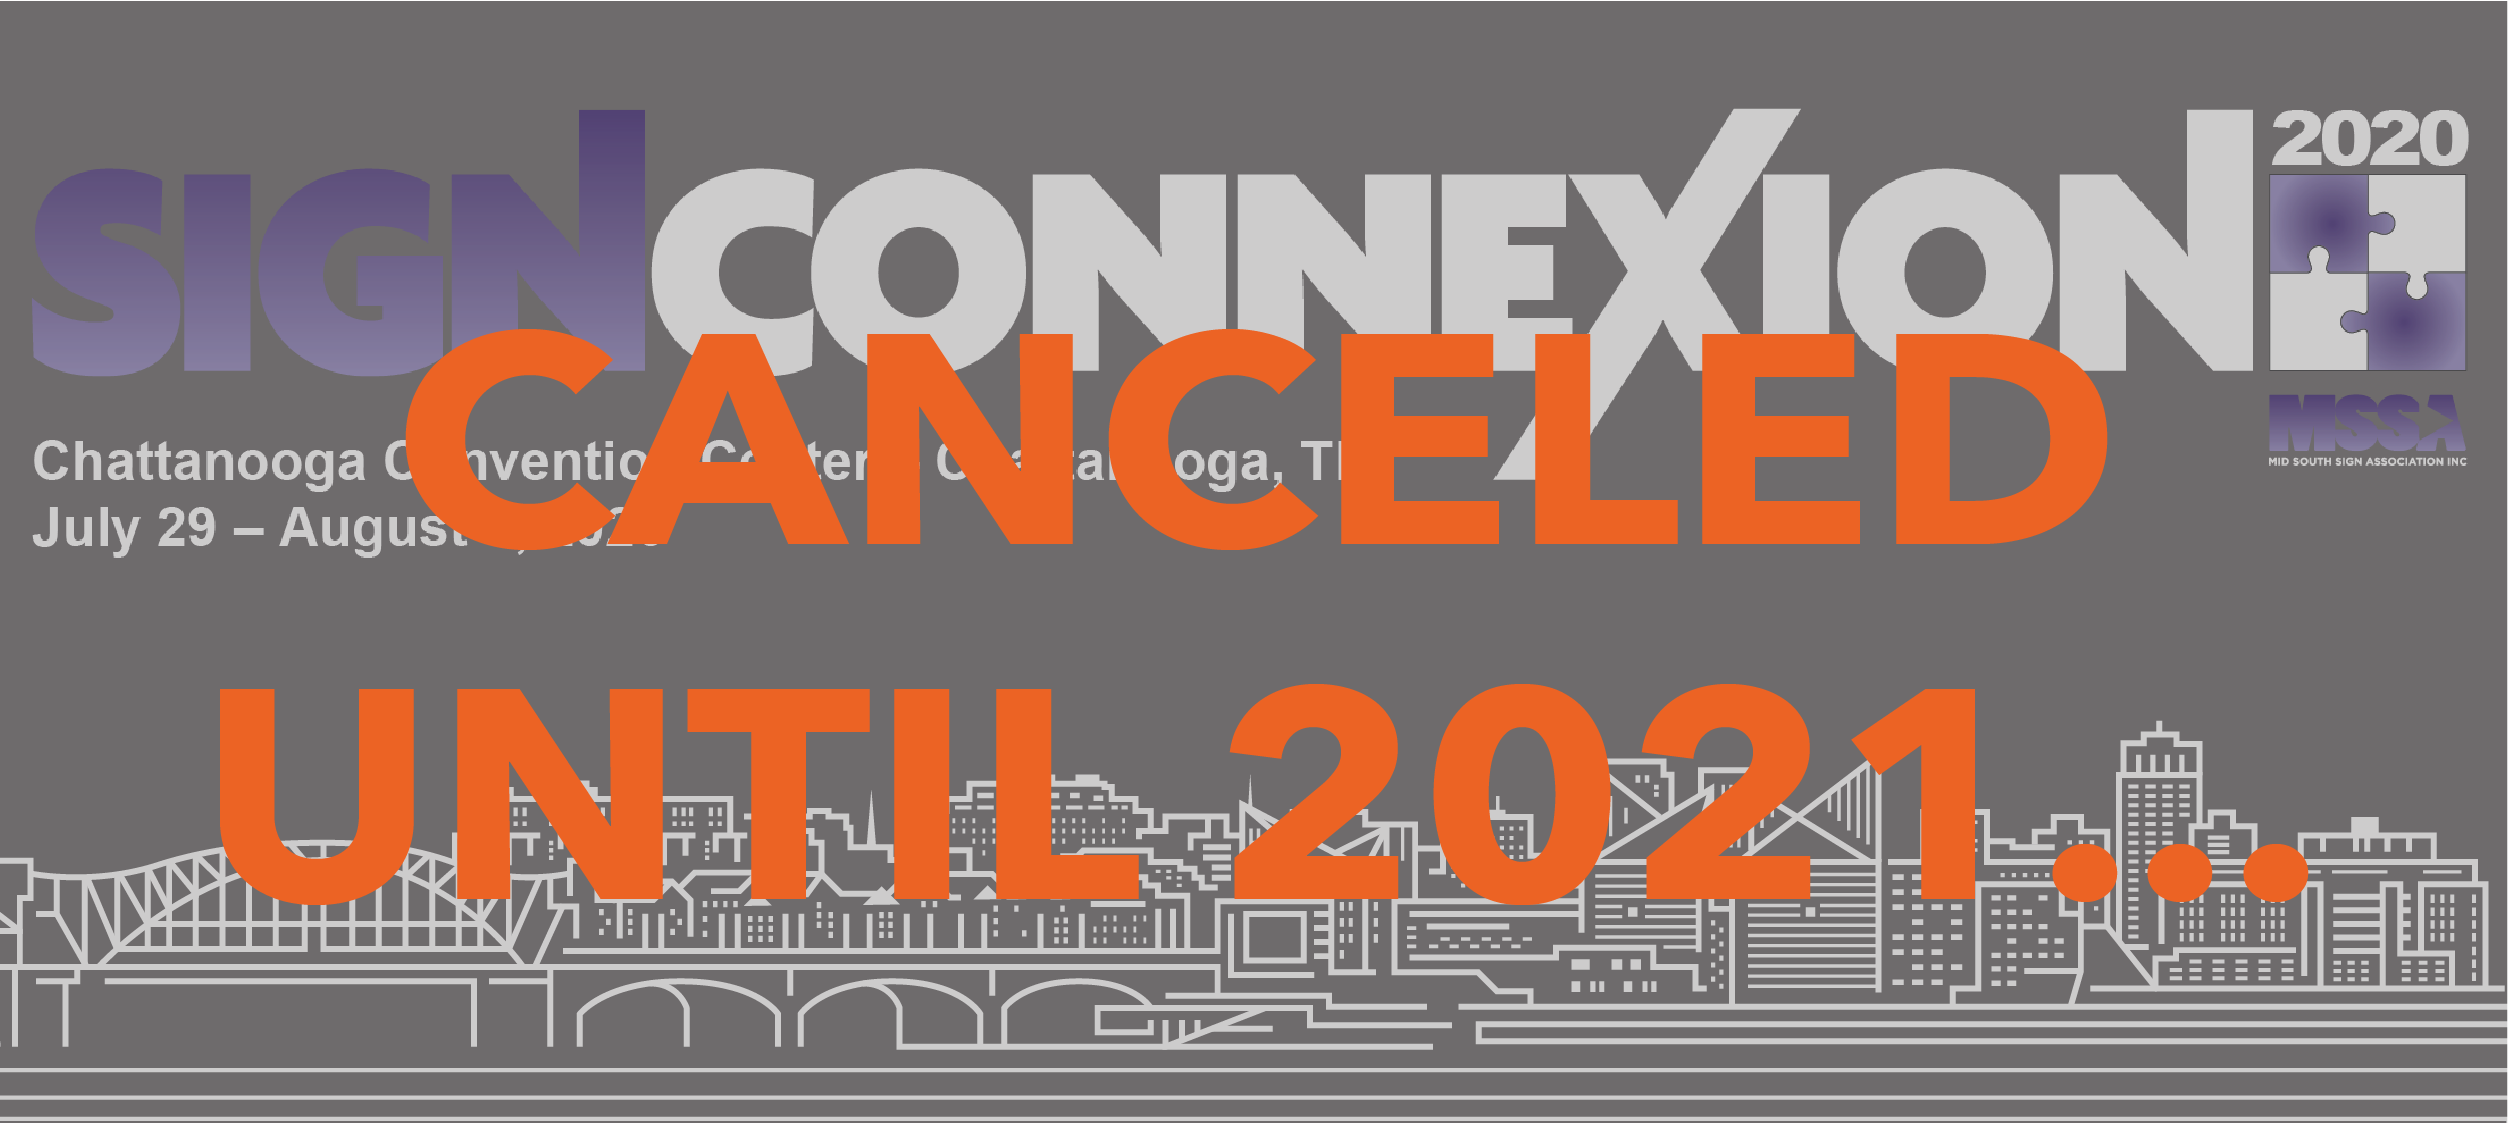 event cancelled until 2021 notice